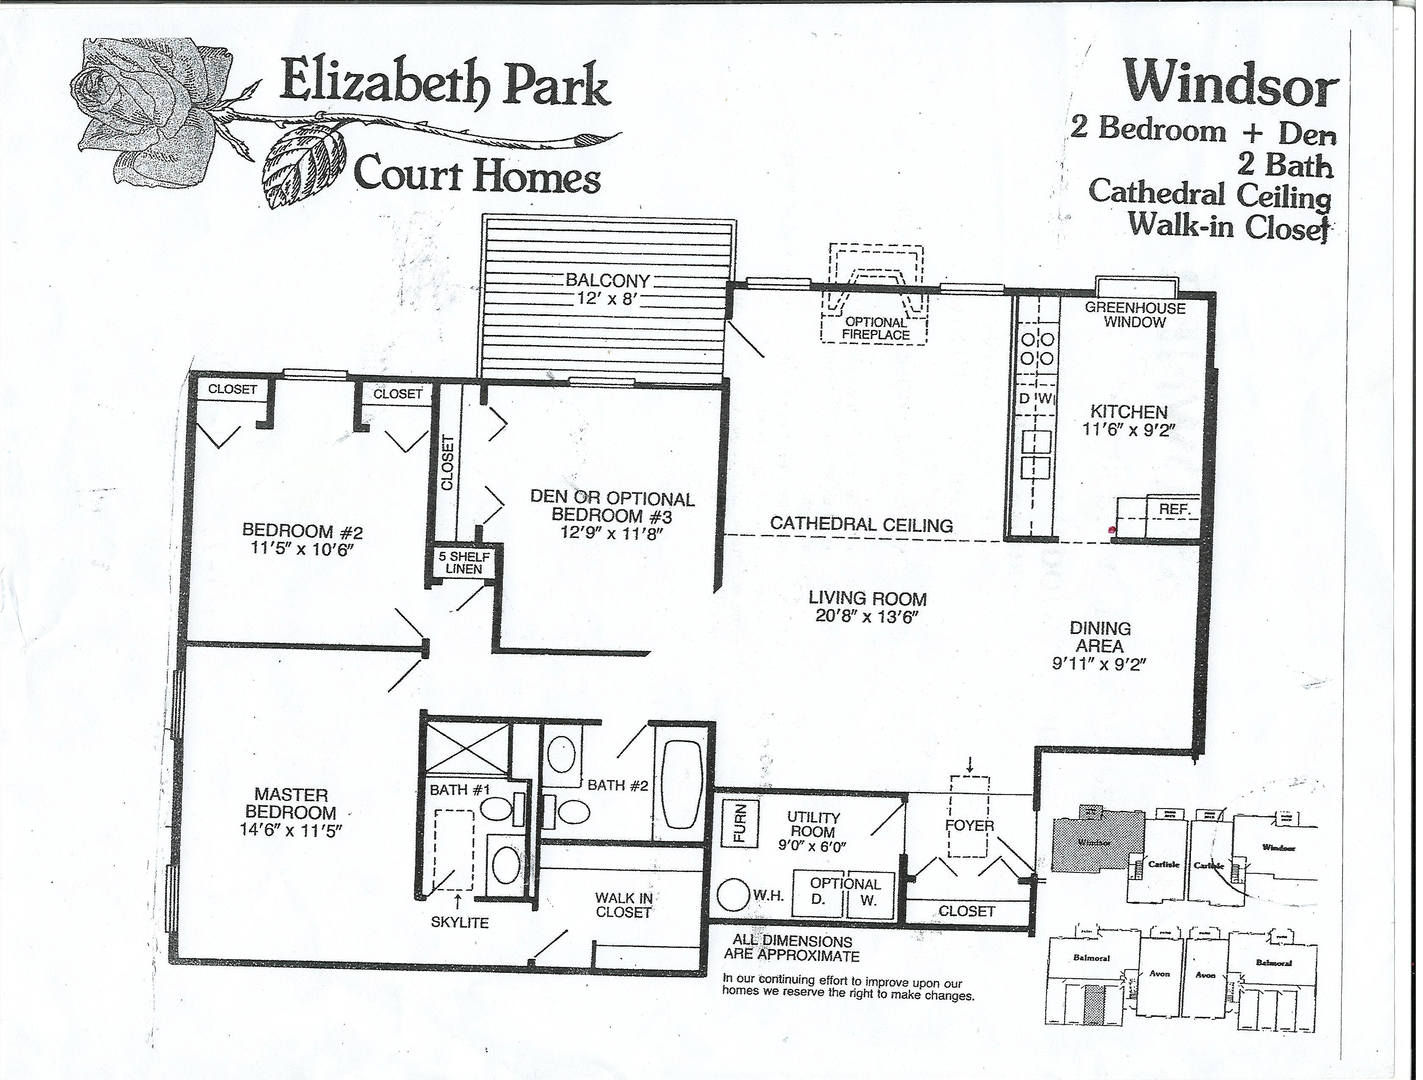 Outstanding Homes For Sale In Wood Dale Il Picture Collection - Home ...